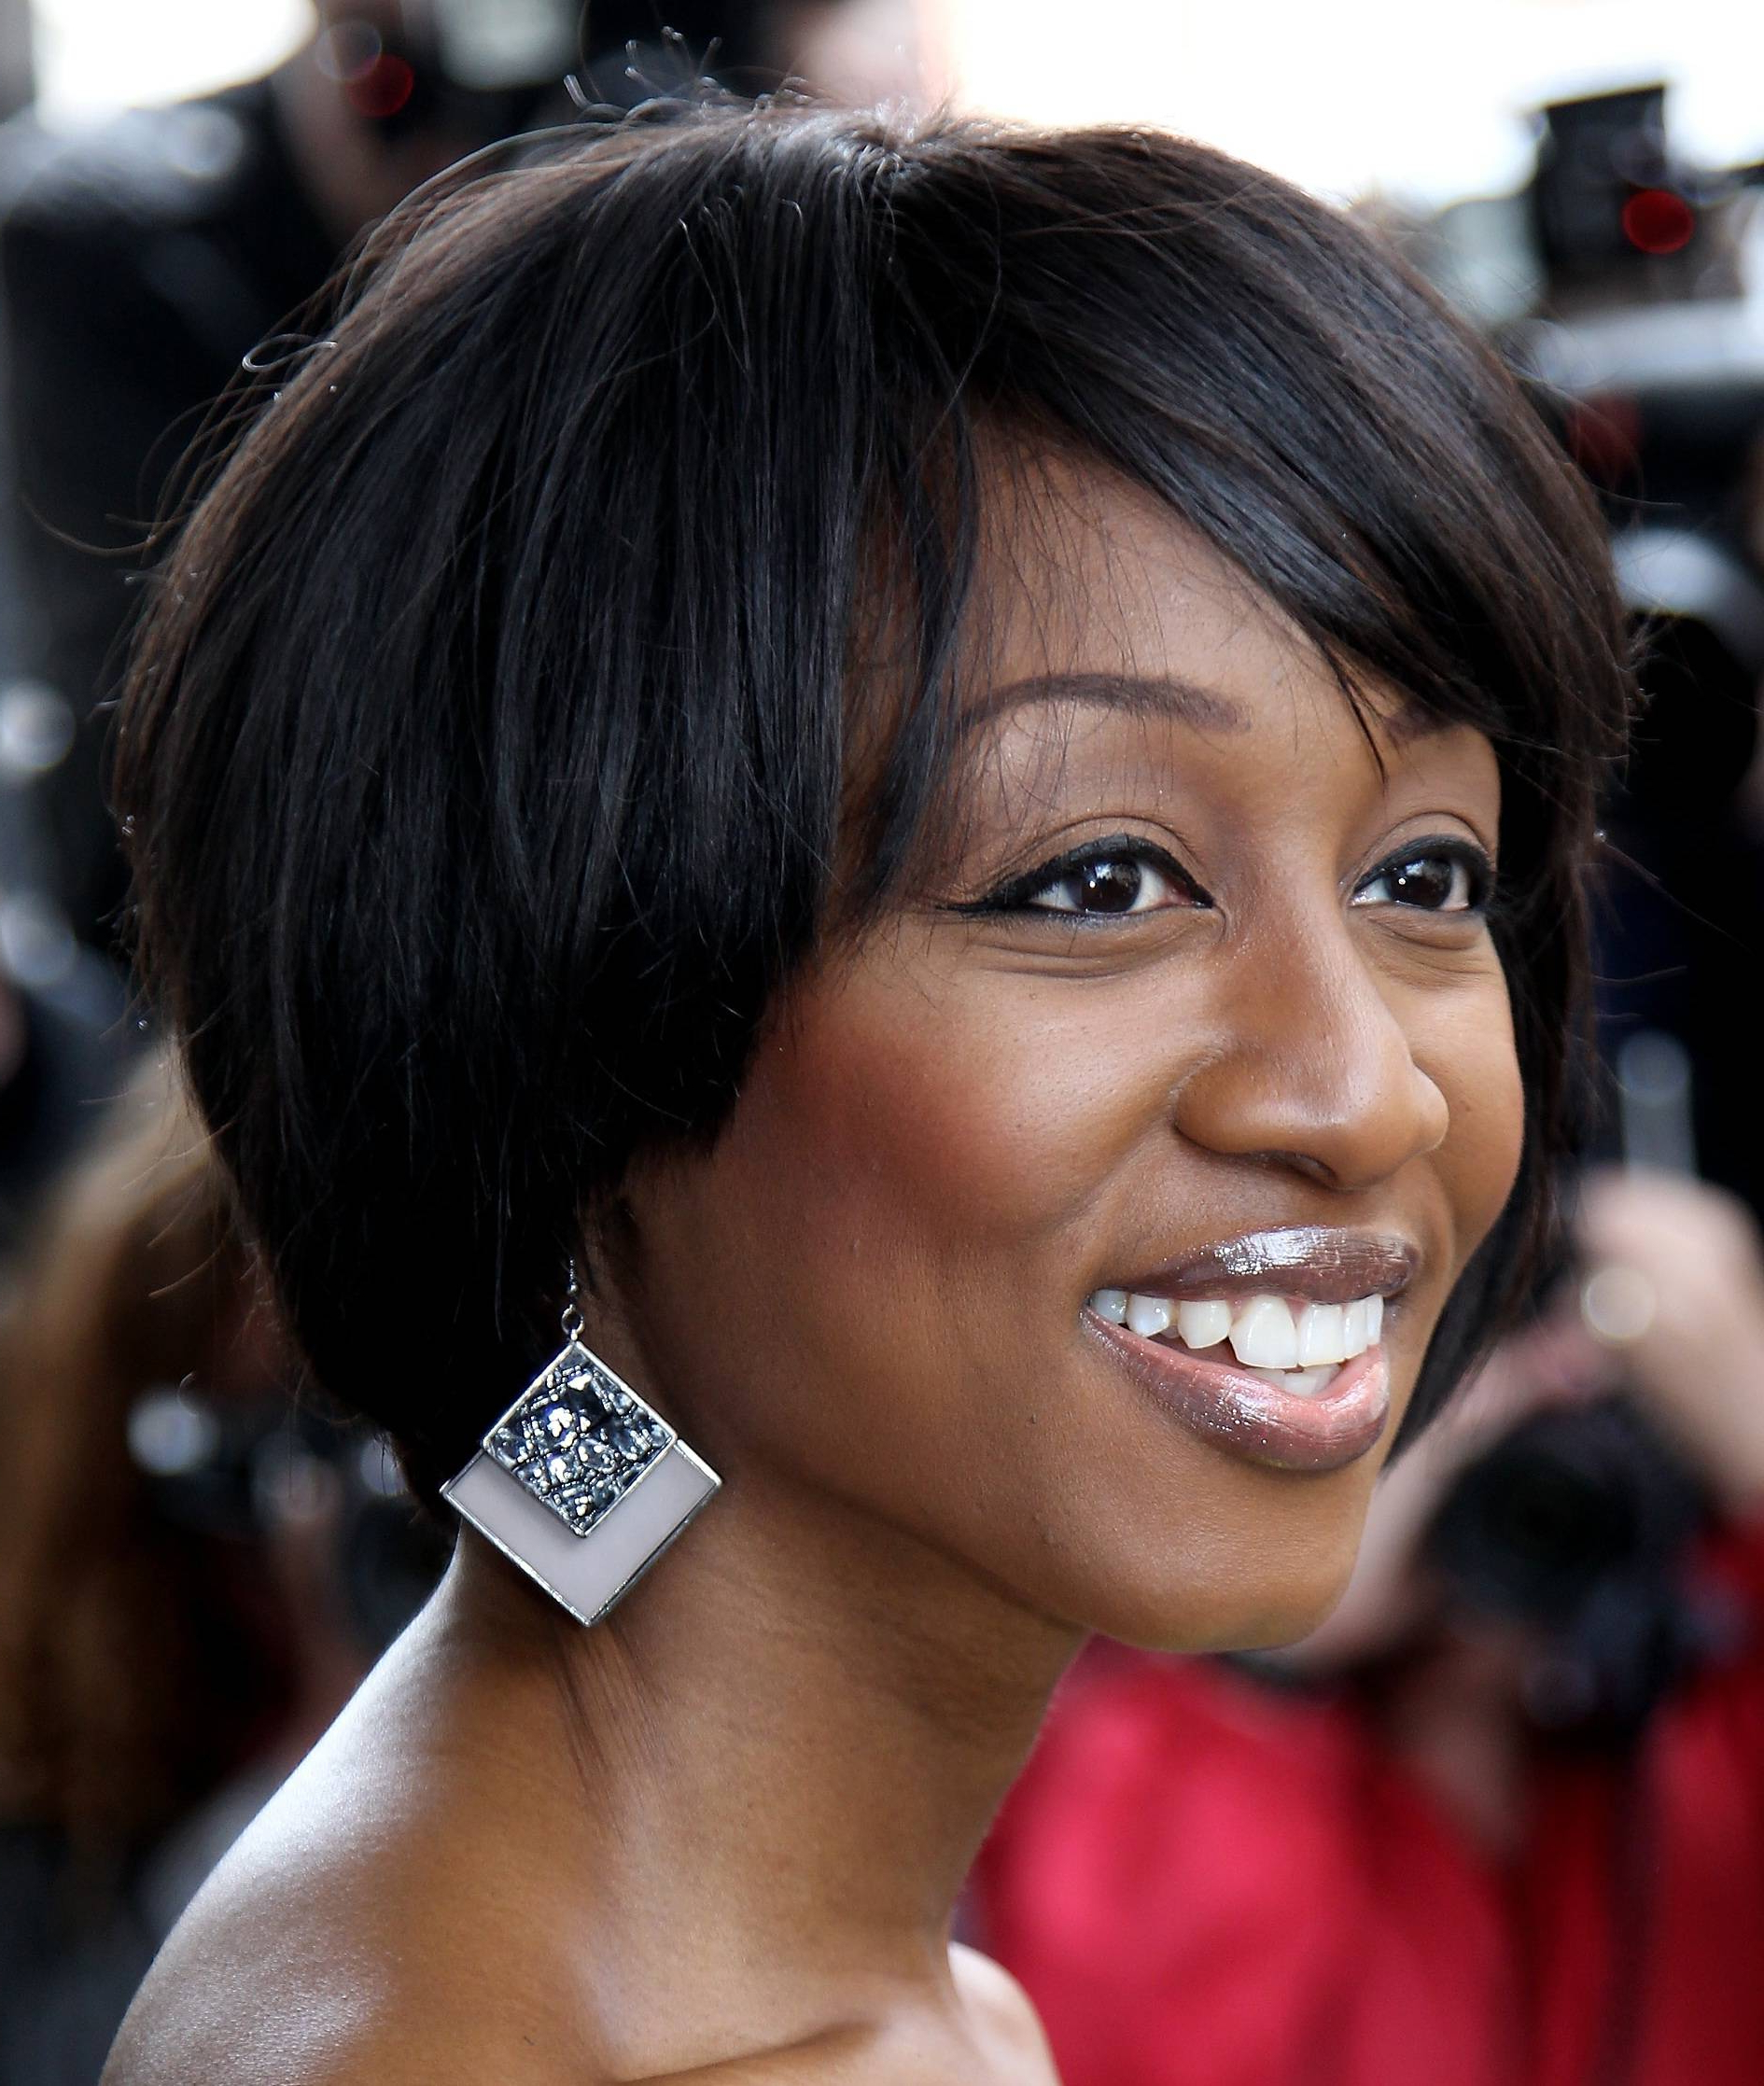 Black Short Bob Hairstyles 2013 – Hairstyle For Women & Man With Regard To Most Up To Date Medium Hairstyles For African American Women (View 4 of 20)